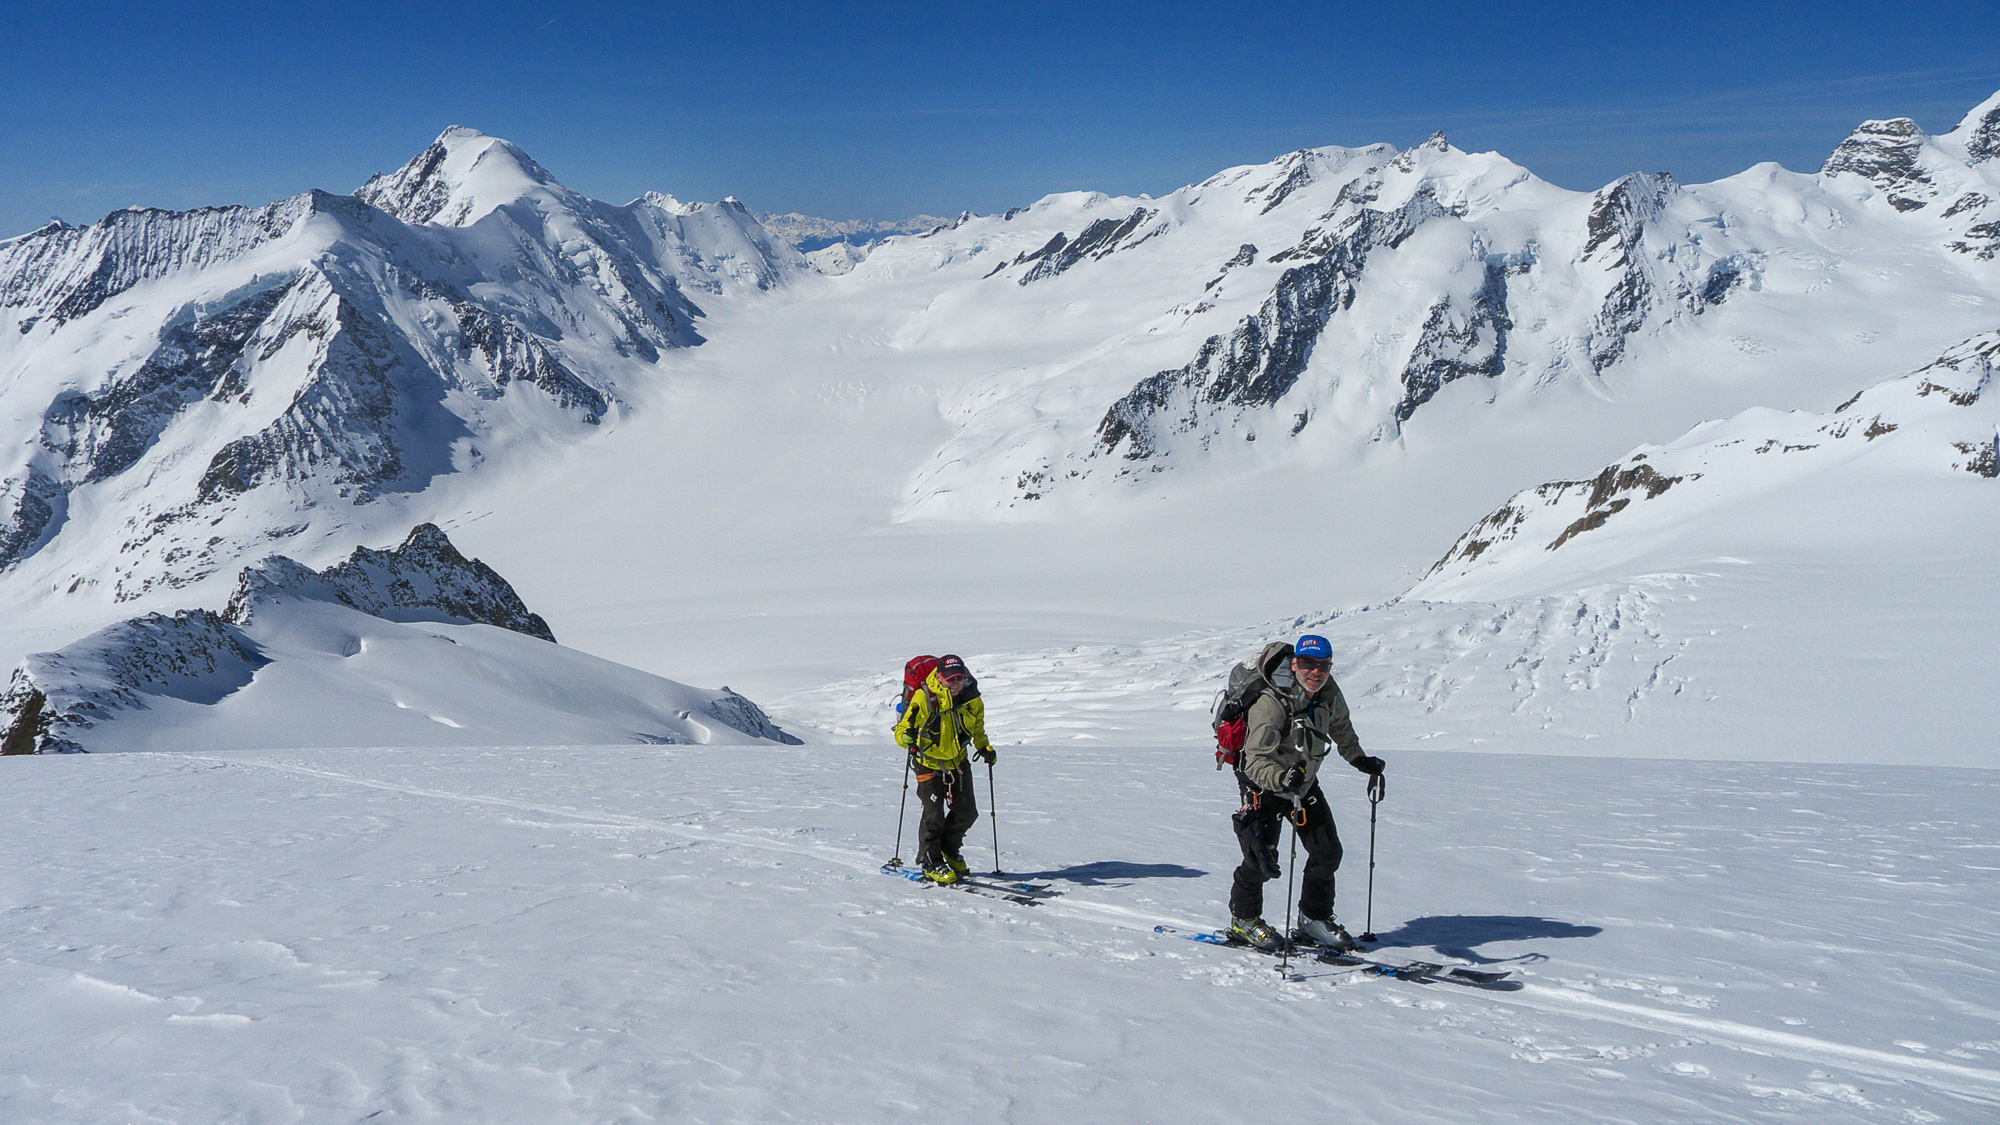 Mark and Cary ski touring in the Bernese Alps.jpg